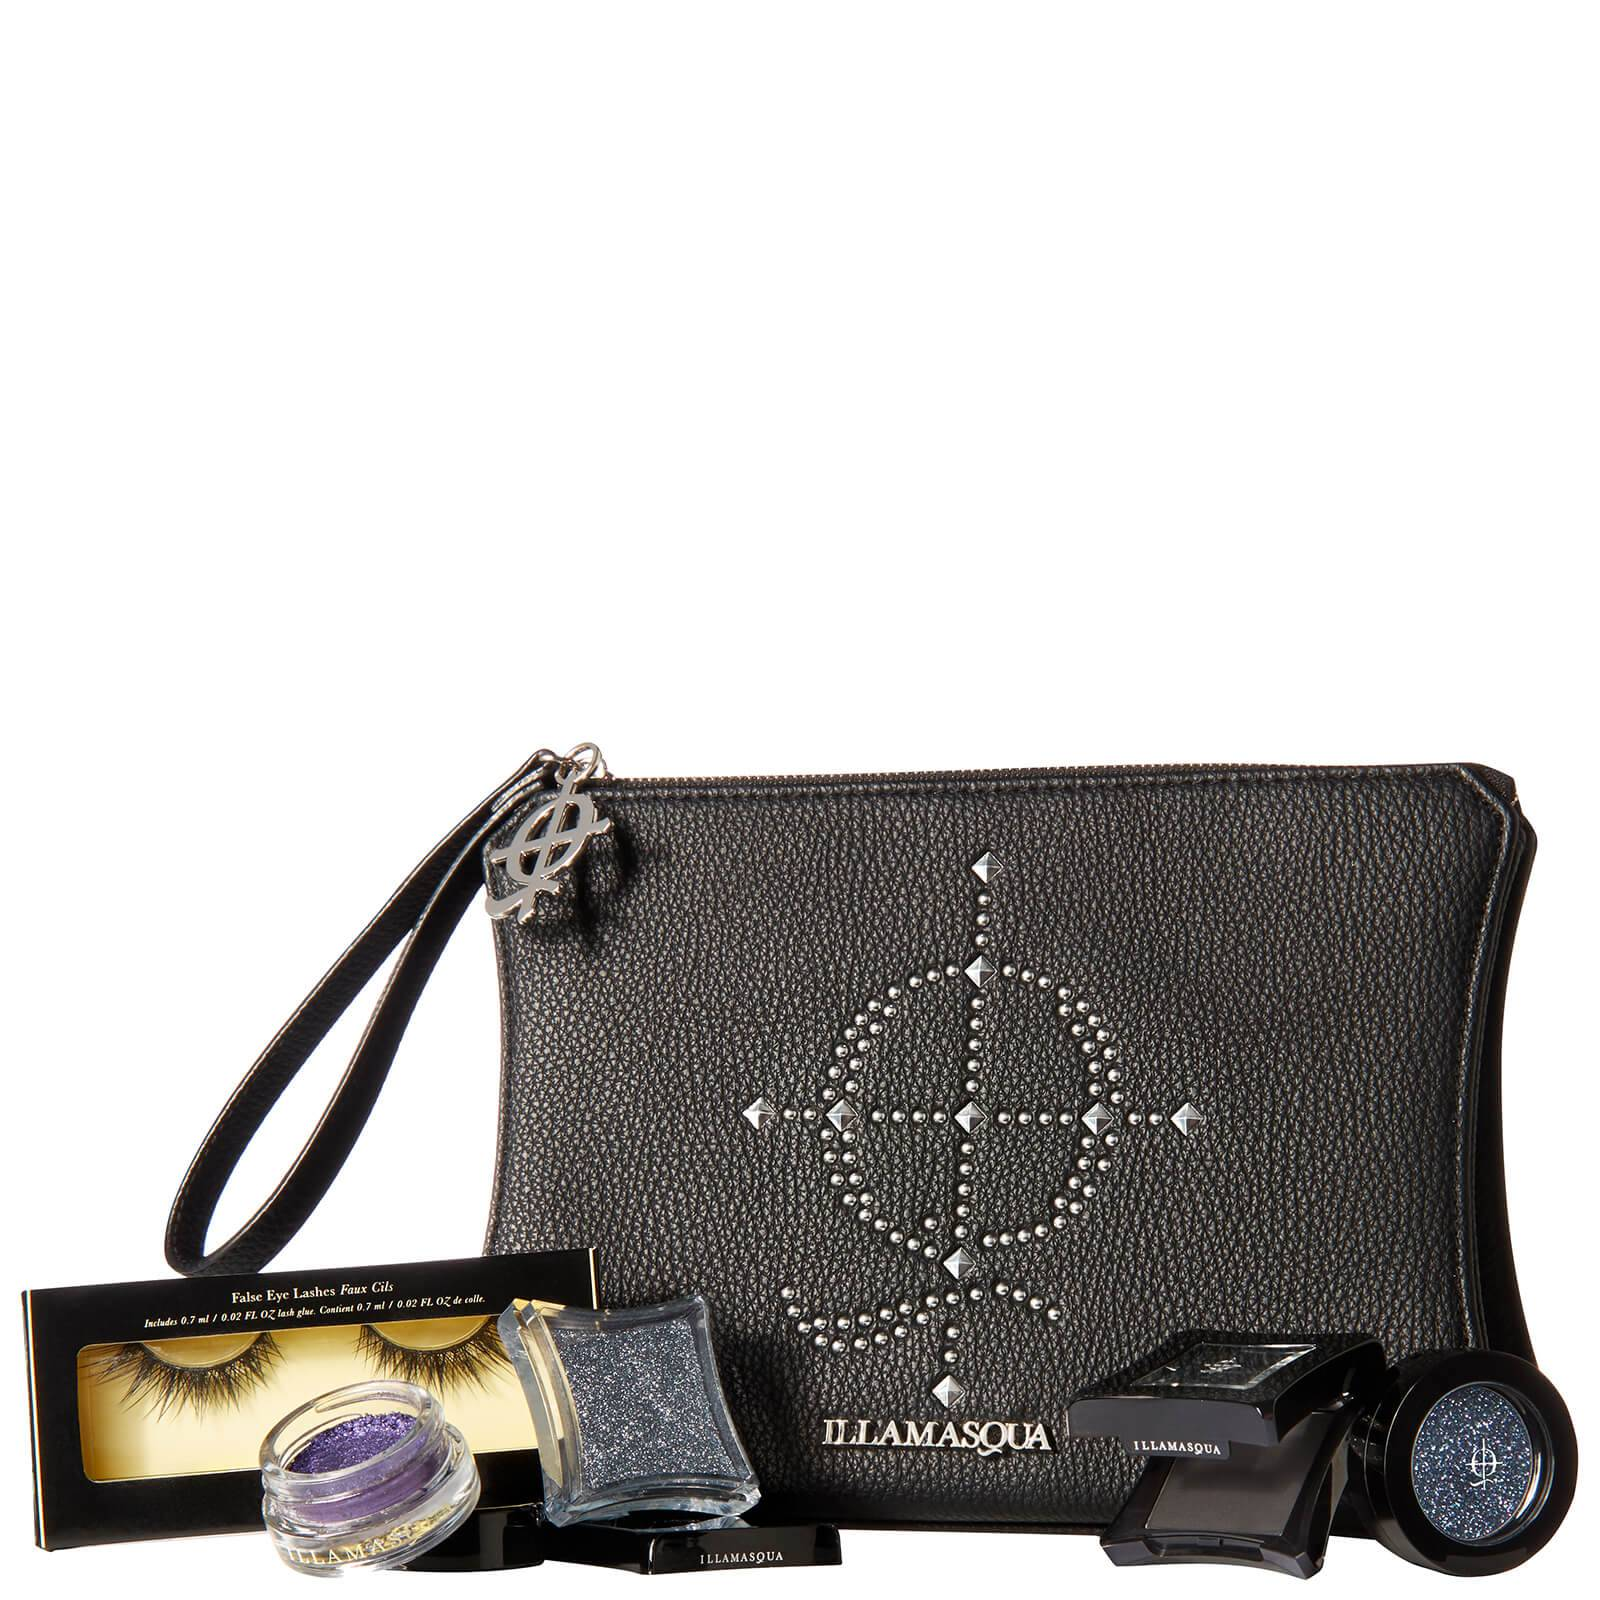 Illamasqua Limited Edition Purple Reign Kit (Worth £111)